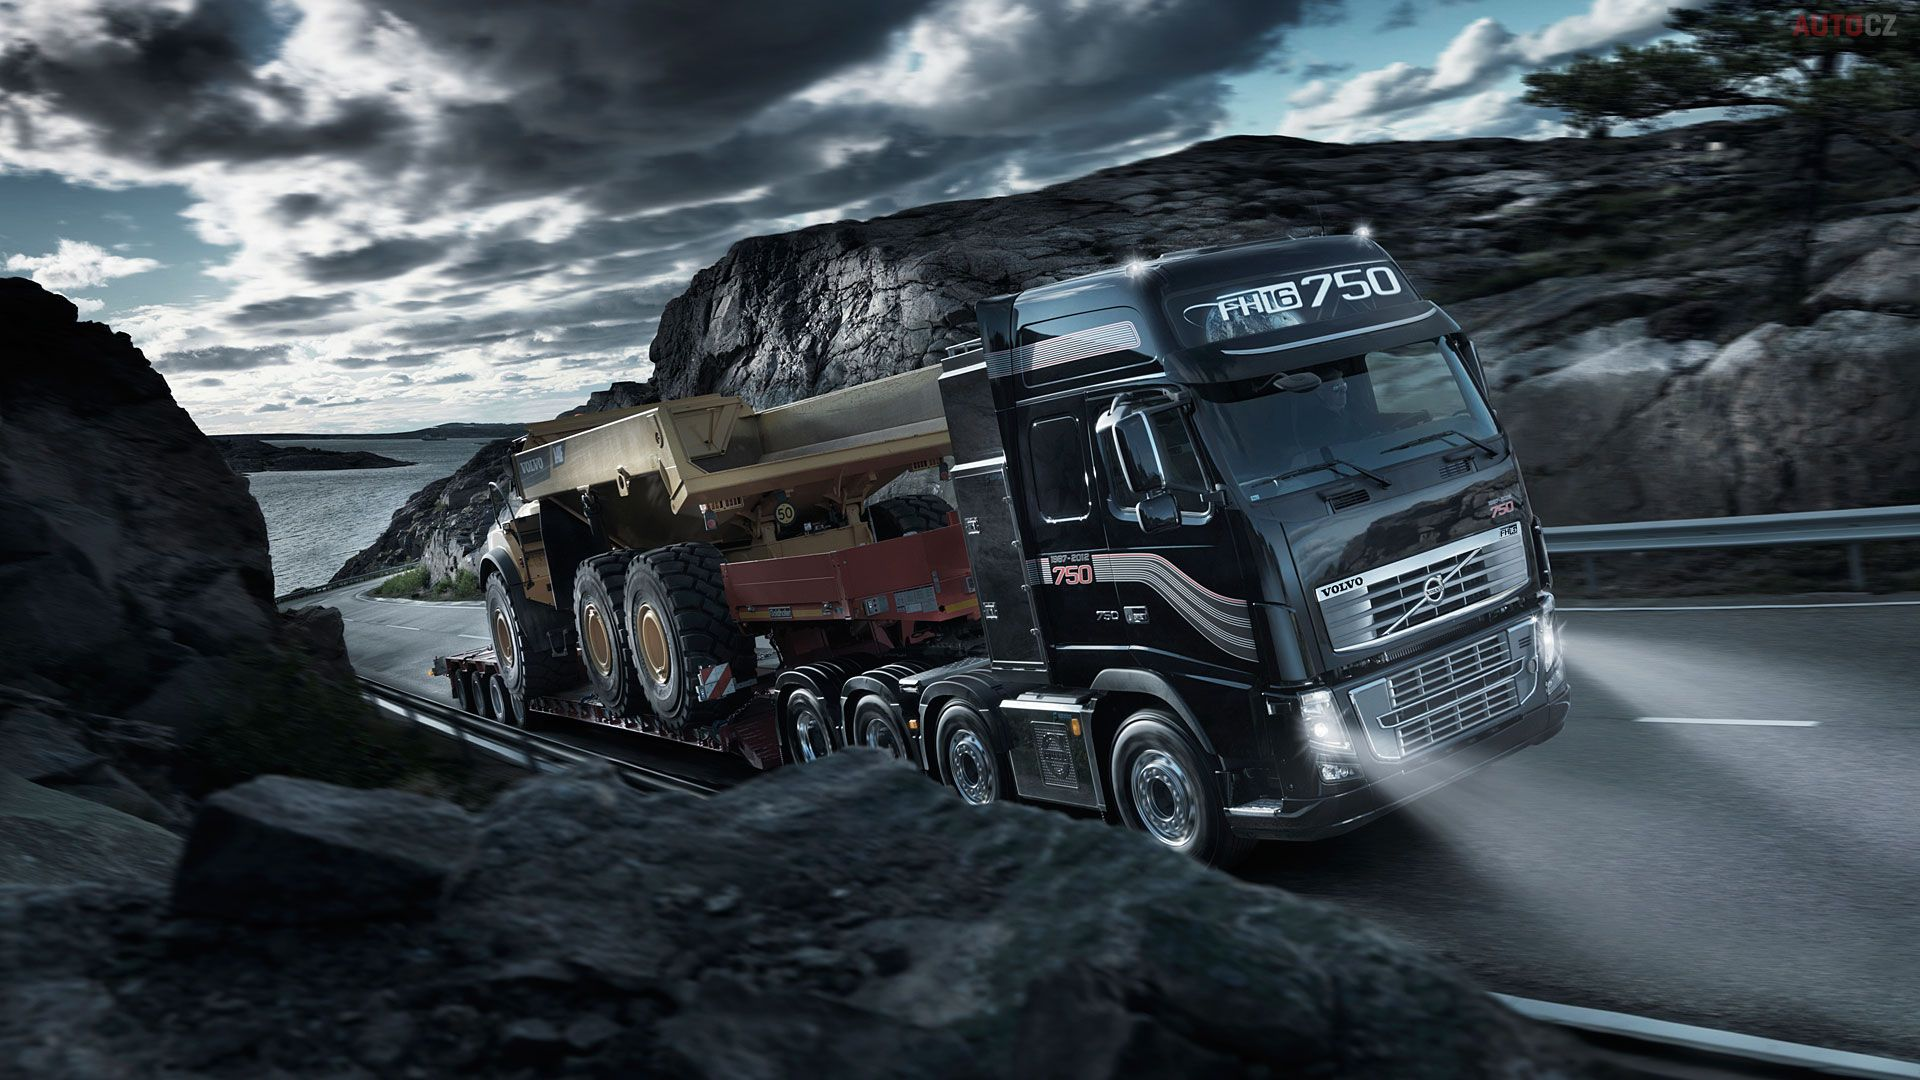 Image For Auto Car Dump Truck Hd Wallpaper Free Download 1920 1080